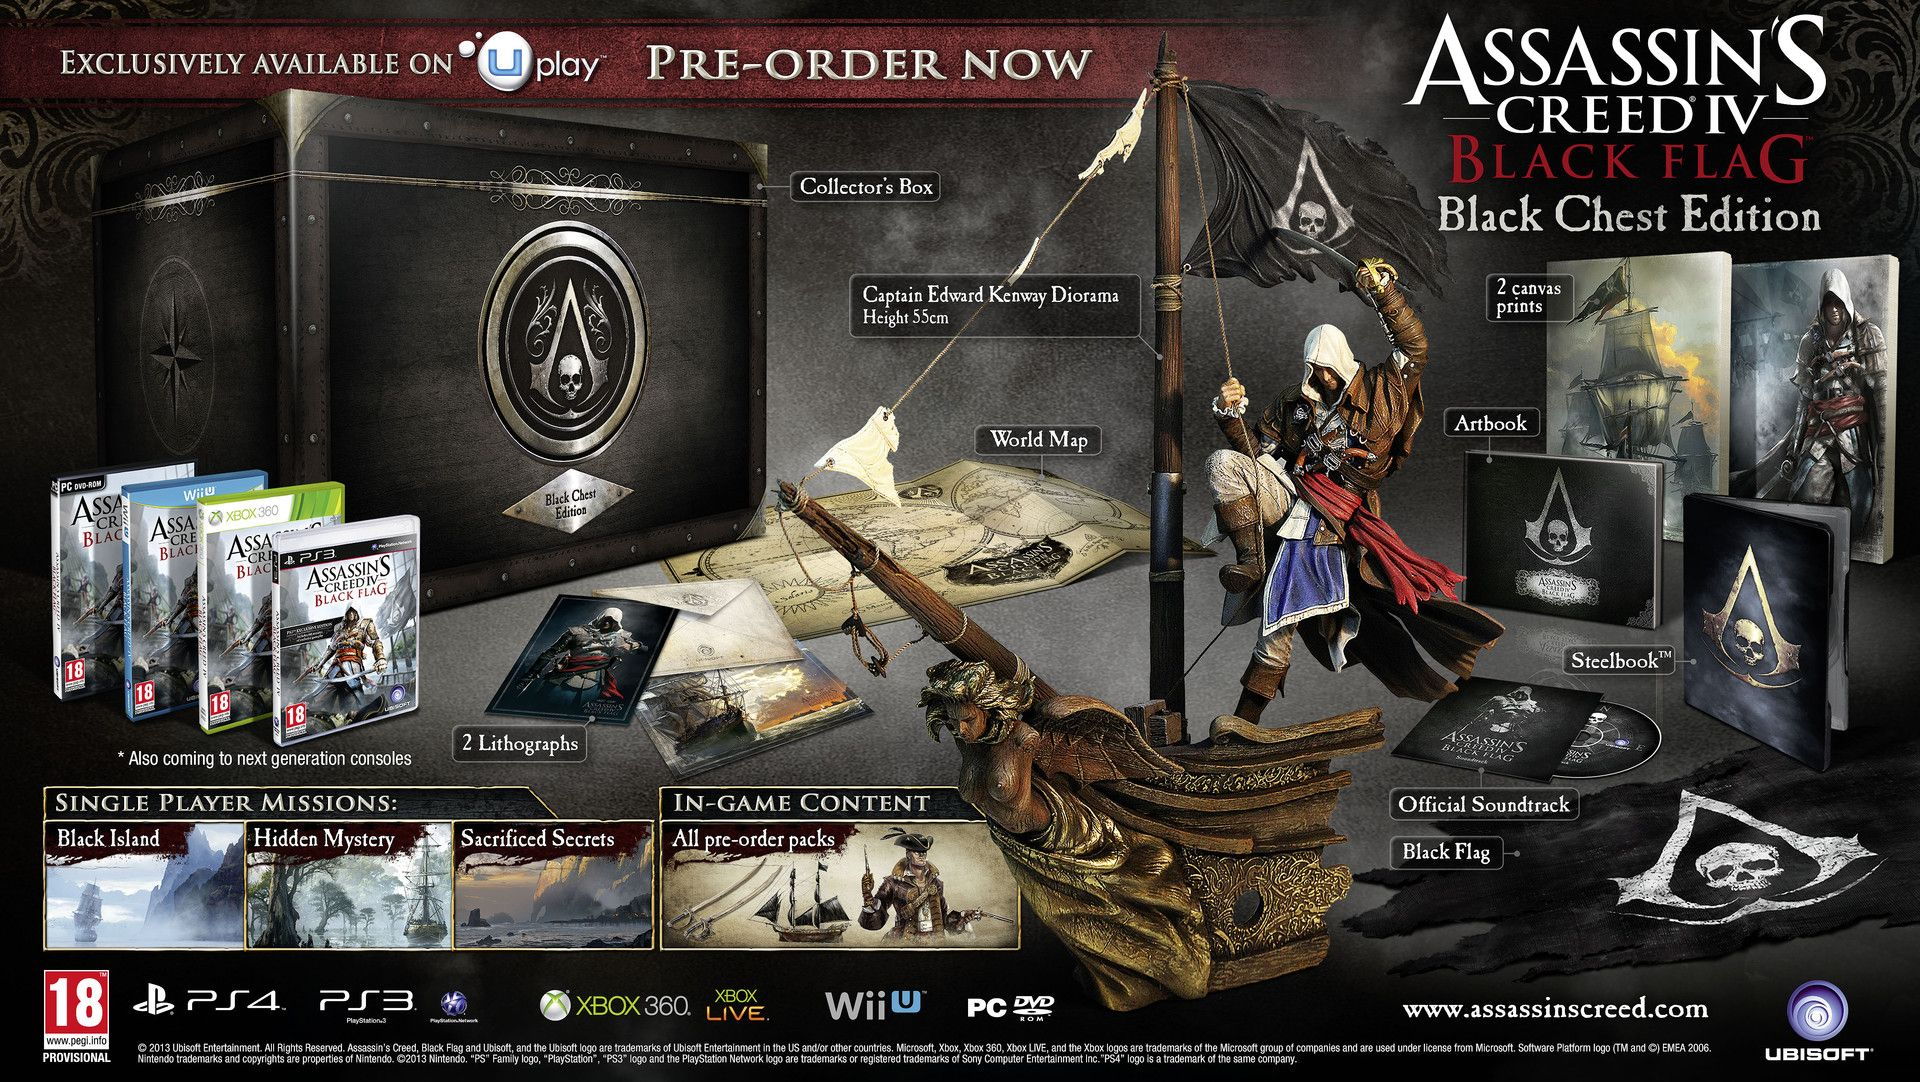 Assassins creed 4 collectors editions announced first gameplay assassins creed 4 collectors editions announced first gameplay footage revealed malvernweather Choice Image